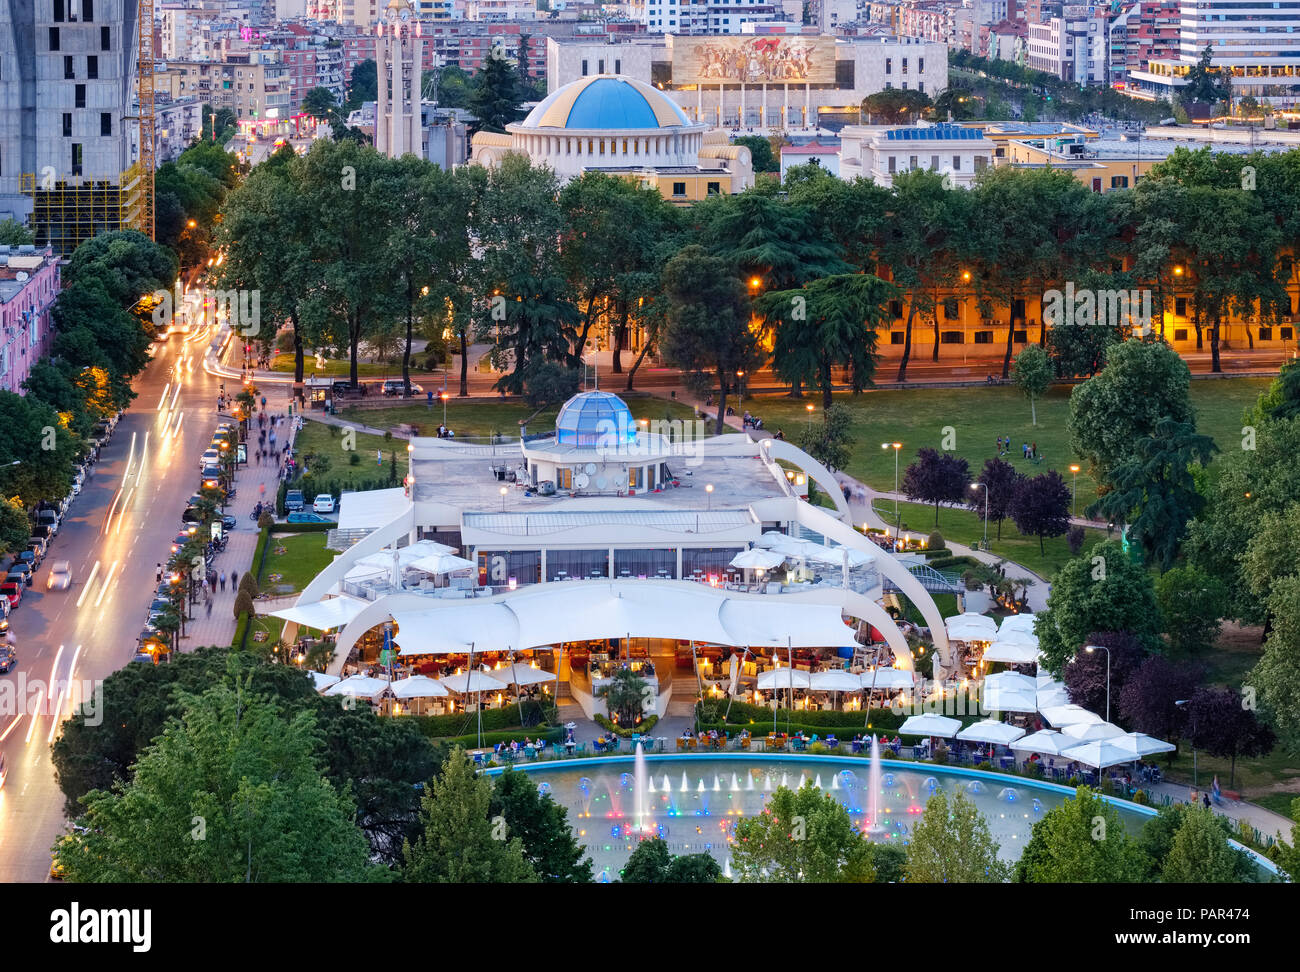 Albania, Tirana, Cafe Taiwan in Rinia Park, resurrection cathedral in the background - Stock Image